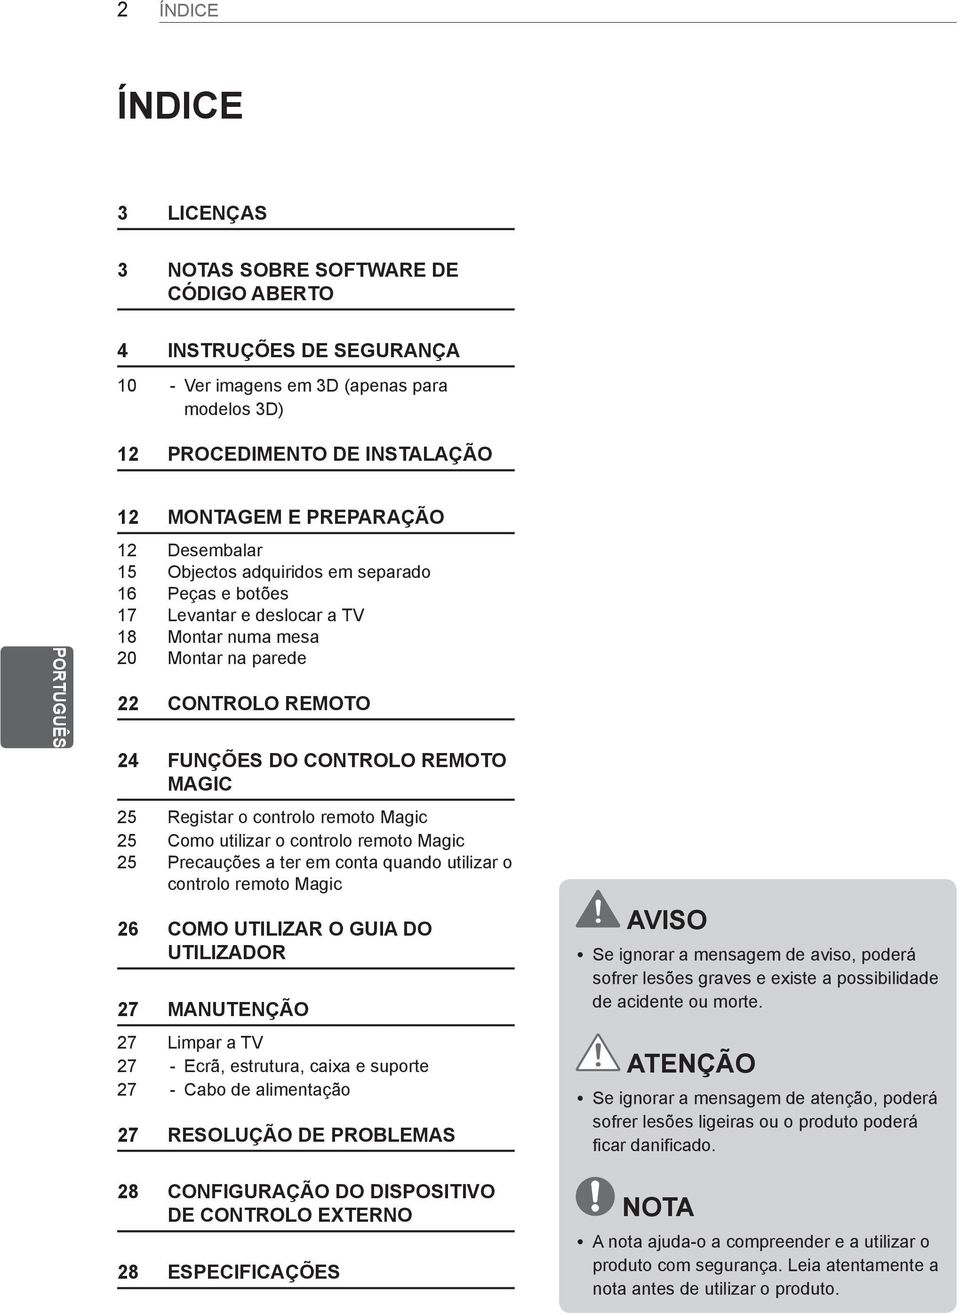 MAGIC 25 Registar o controlo remoto Magic 25 Como utilizar o controlo remoto Magic 25 Precauções a ter em conta quando utilizar o controlo remoto Magic 26 COMO UTILIZAR O GUIA DO UTILIZADOR 27